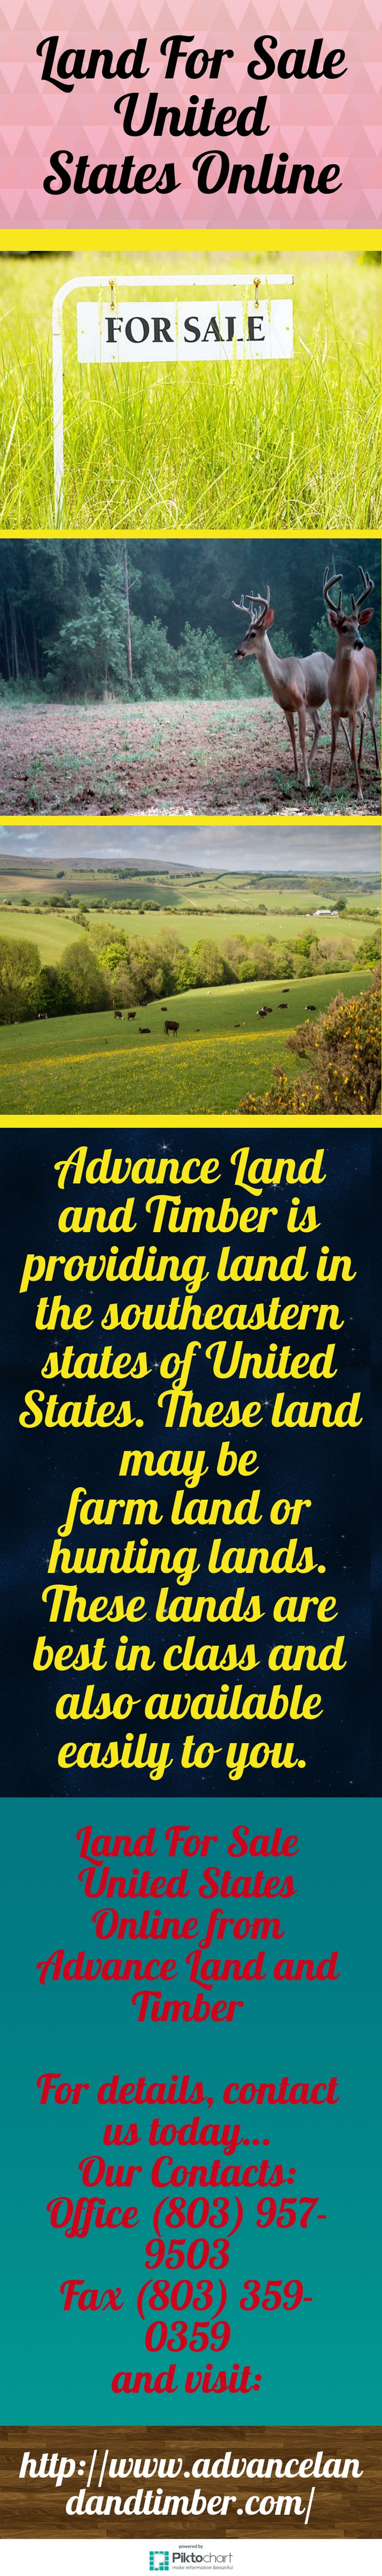 Advance Land and Timber is providing land in the southeastern states of United States. These land may be farm land or hunting lands. These lands are best in class and also available easily to you. Land For Sale United States Online from Advance Land and Timber, visit:   http://www.advancelandandtimber.com/